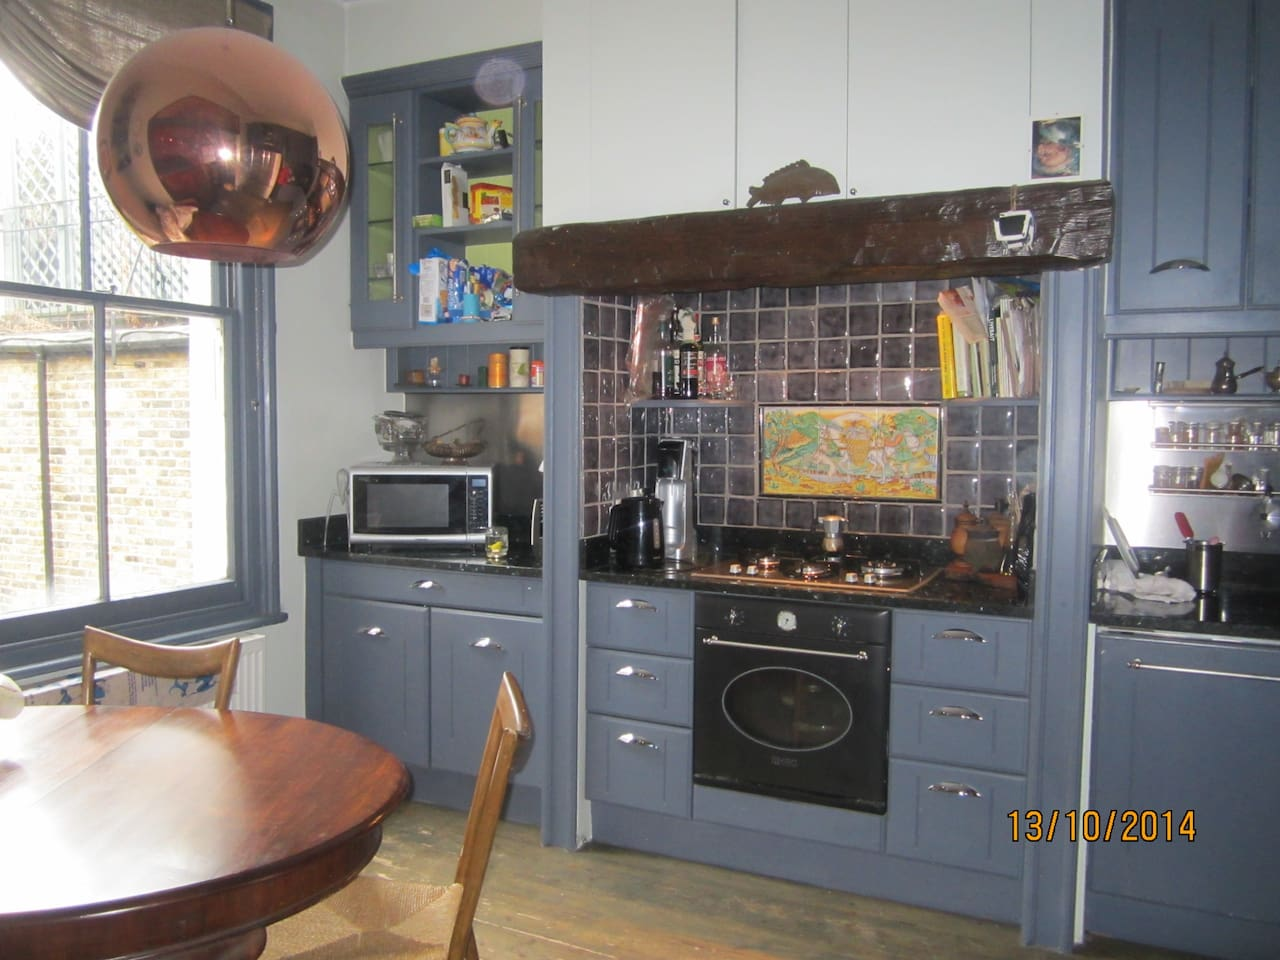 Very cosy kitchen, with granite top, wooden floors, SMEG oven, combination microwave, dishwasher, two sinks. Very comfortable and elegant.